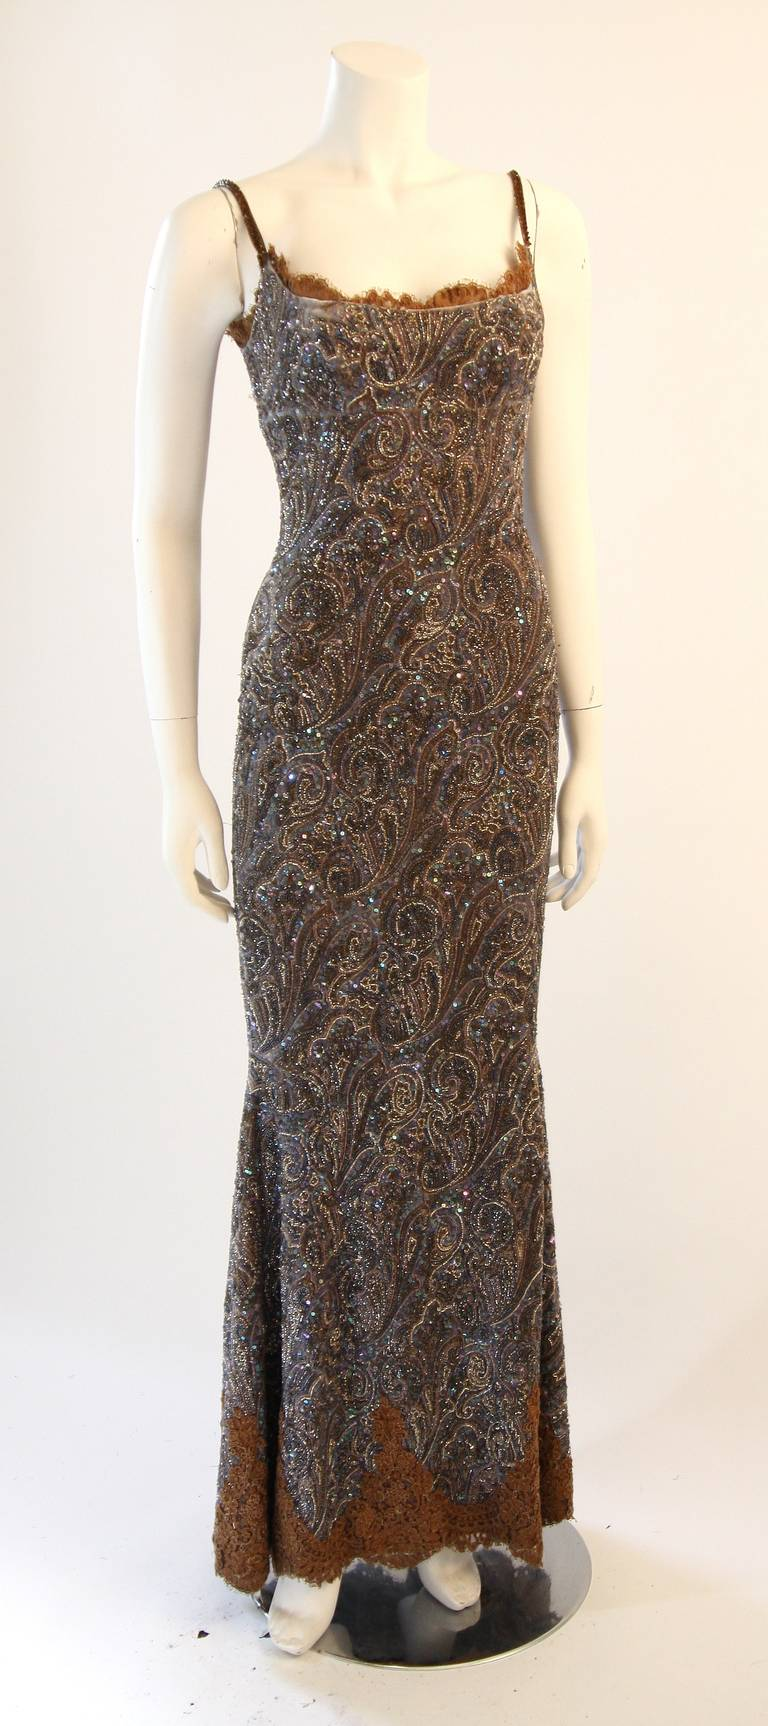 This is an exquisite Randi Rahm gown. The gown is a beautiful spaghetti strap design with brown lace trim. It is composed of a paisley print velvet embellished with beads and rhinestones. Features a side zipper for ease of access. Shown with an